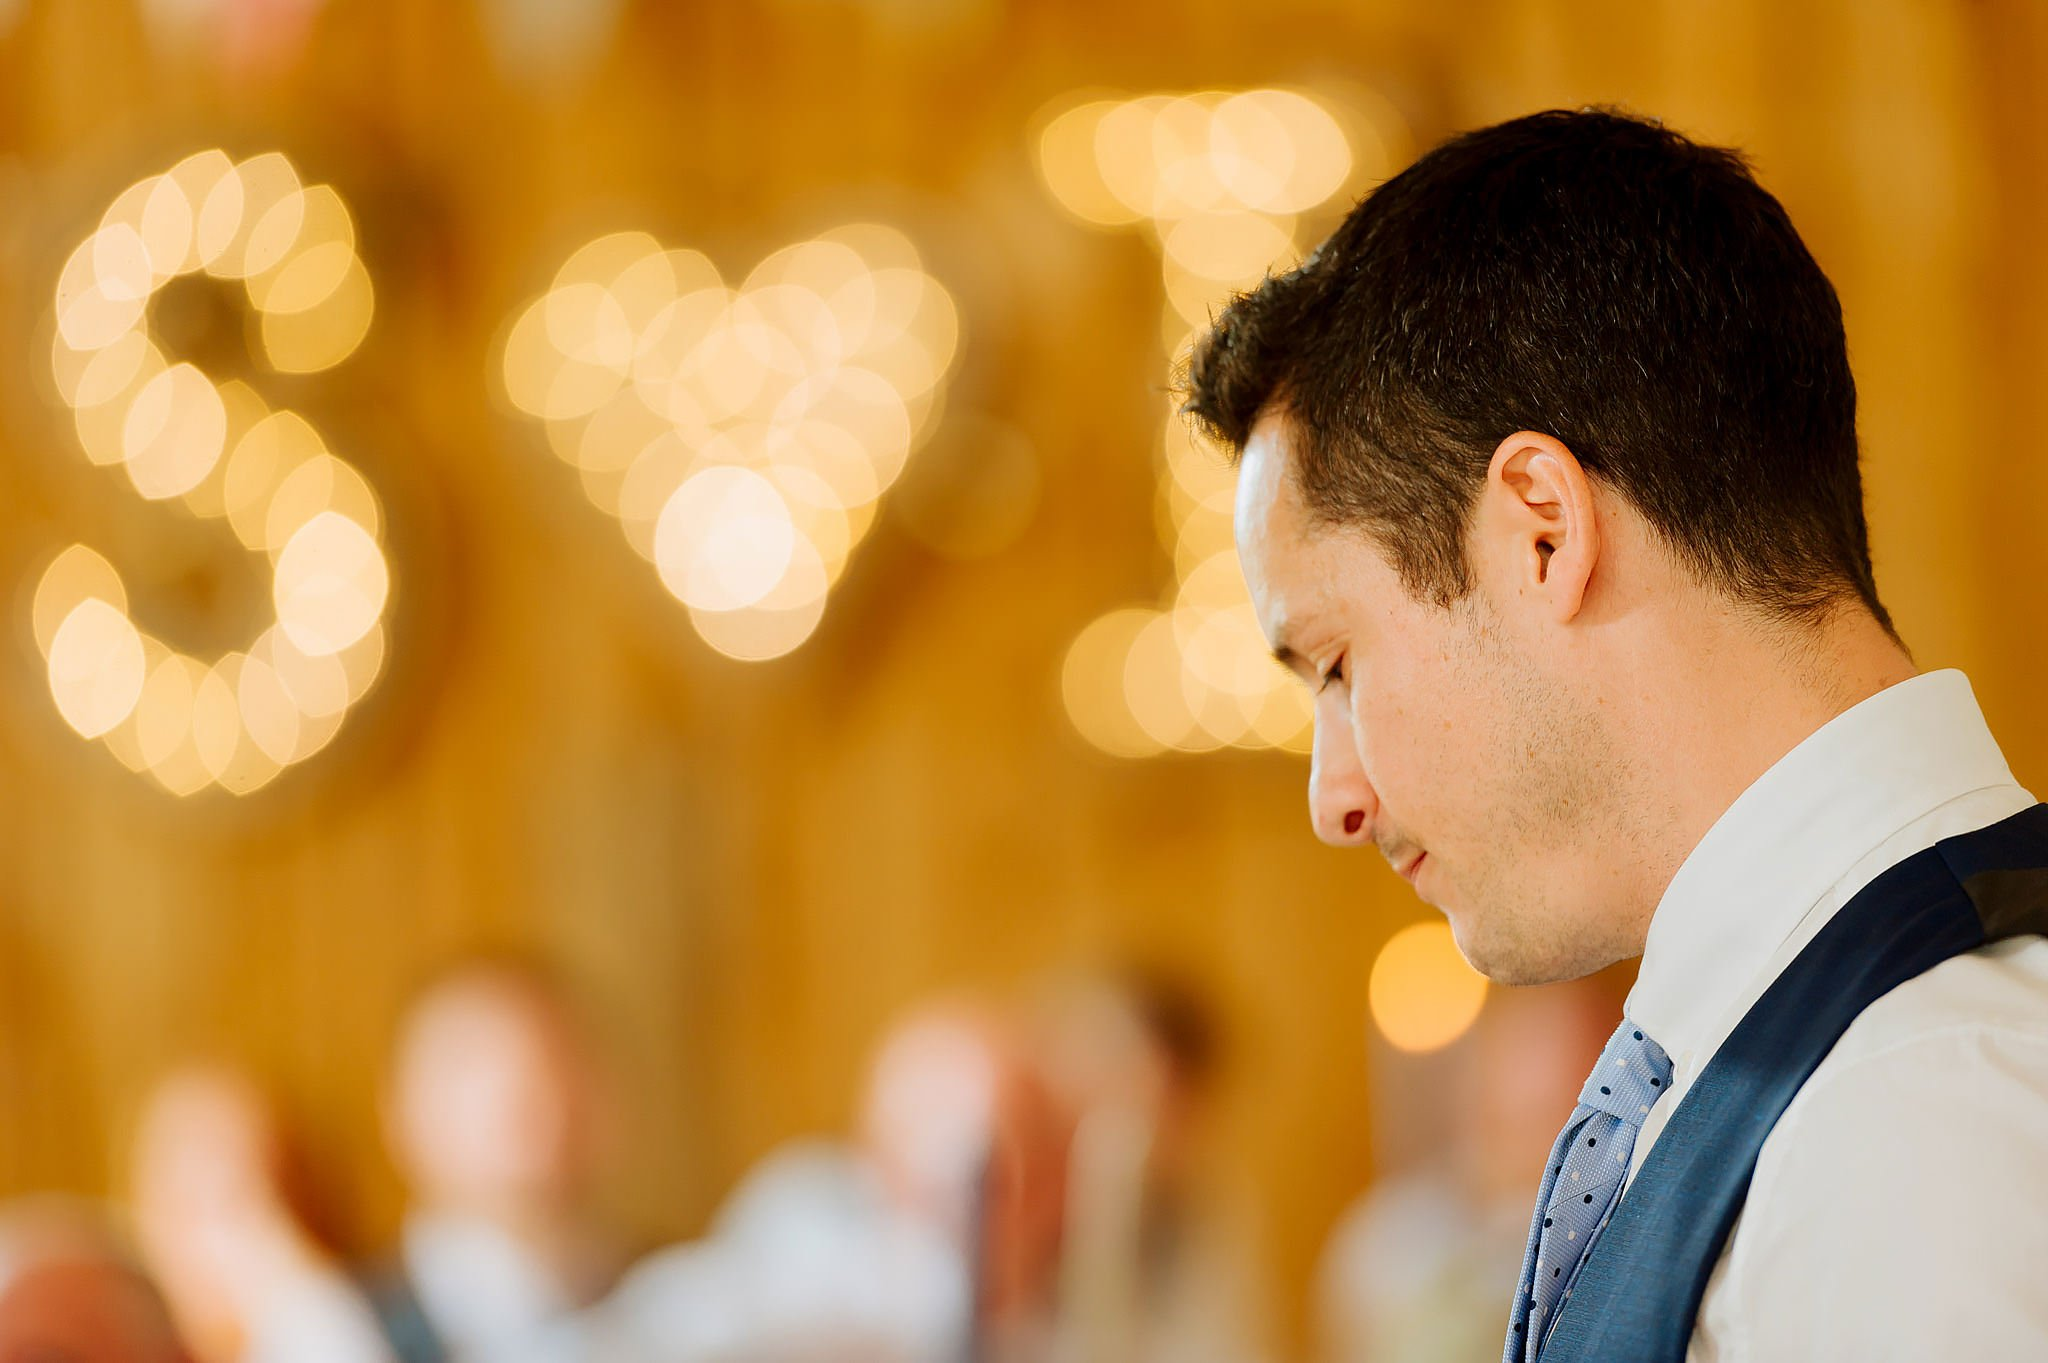 Wedding photography at Hellens Manor in Herefordshire, West Midlands | Shelley + Ian 78